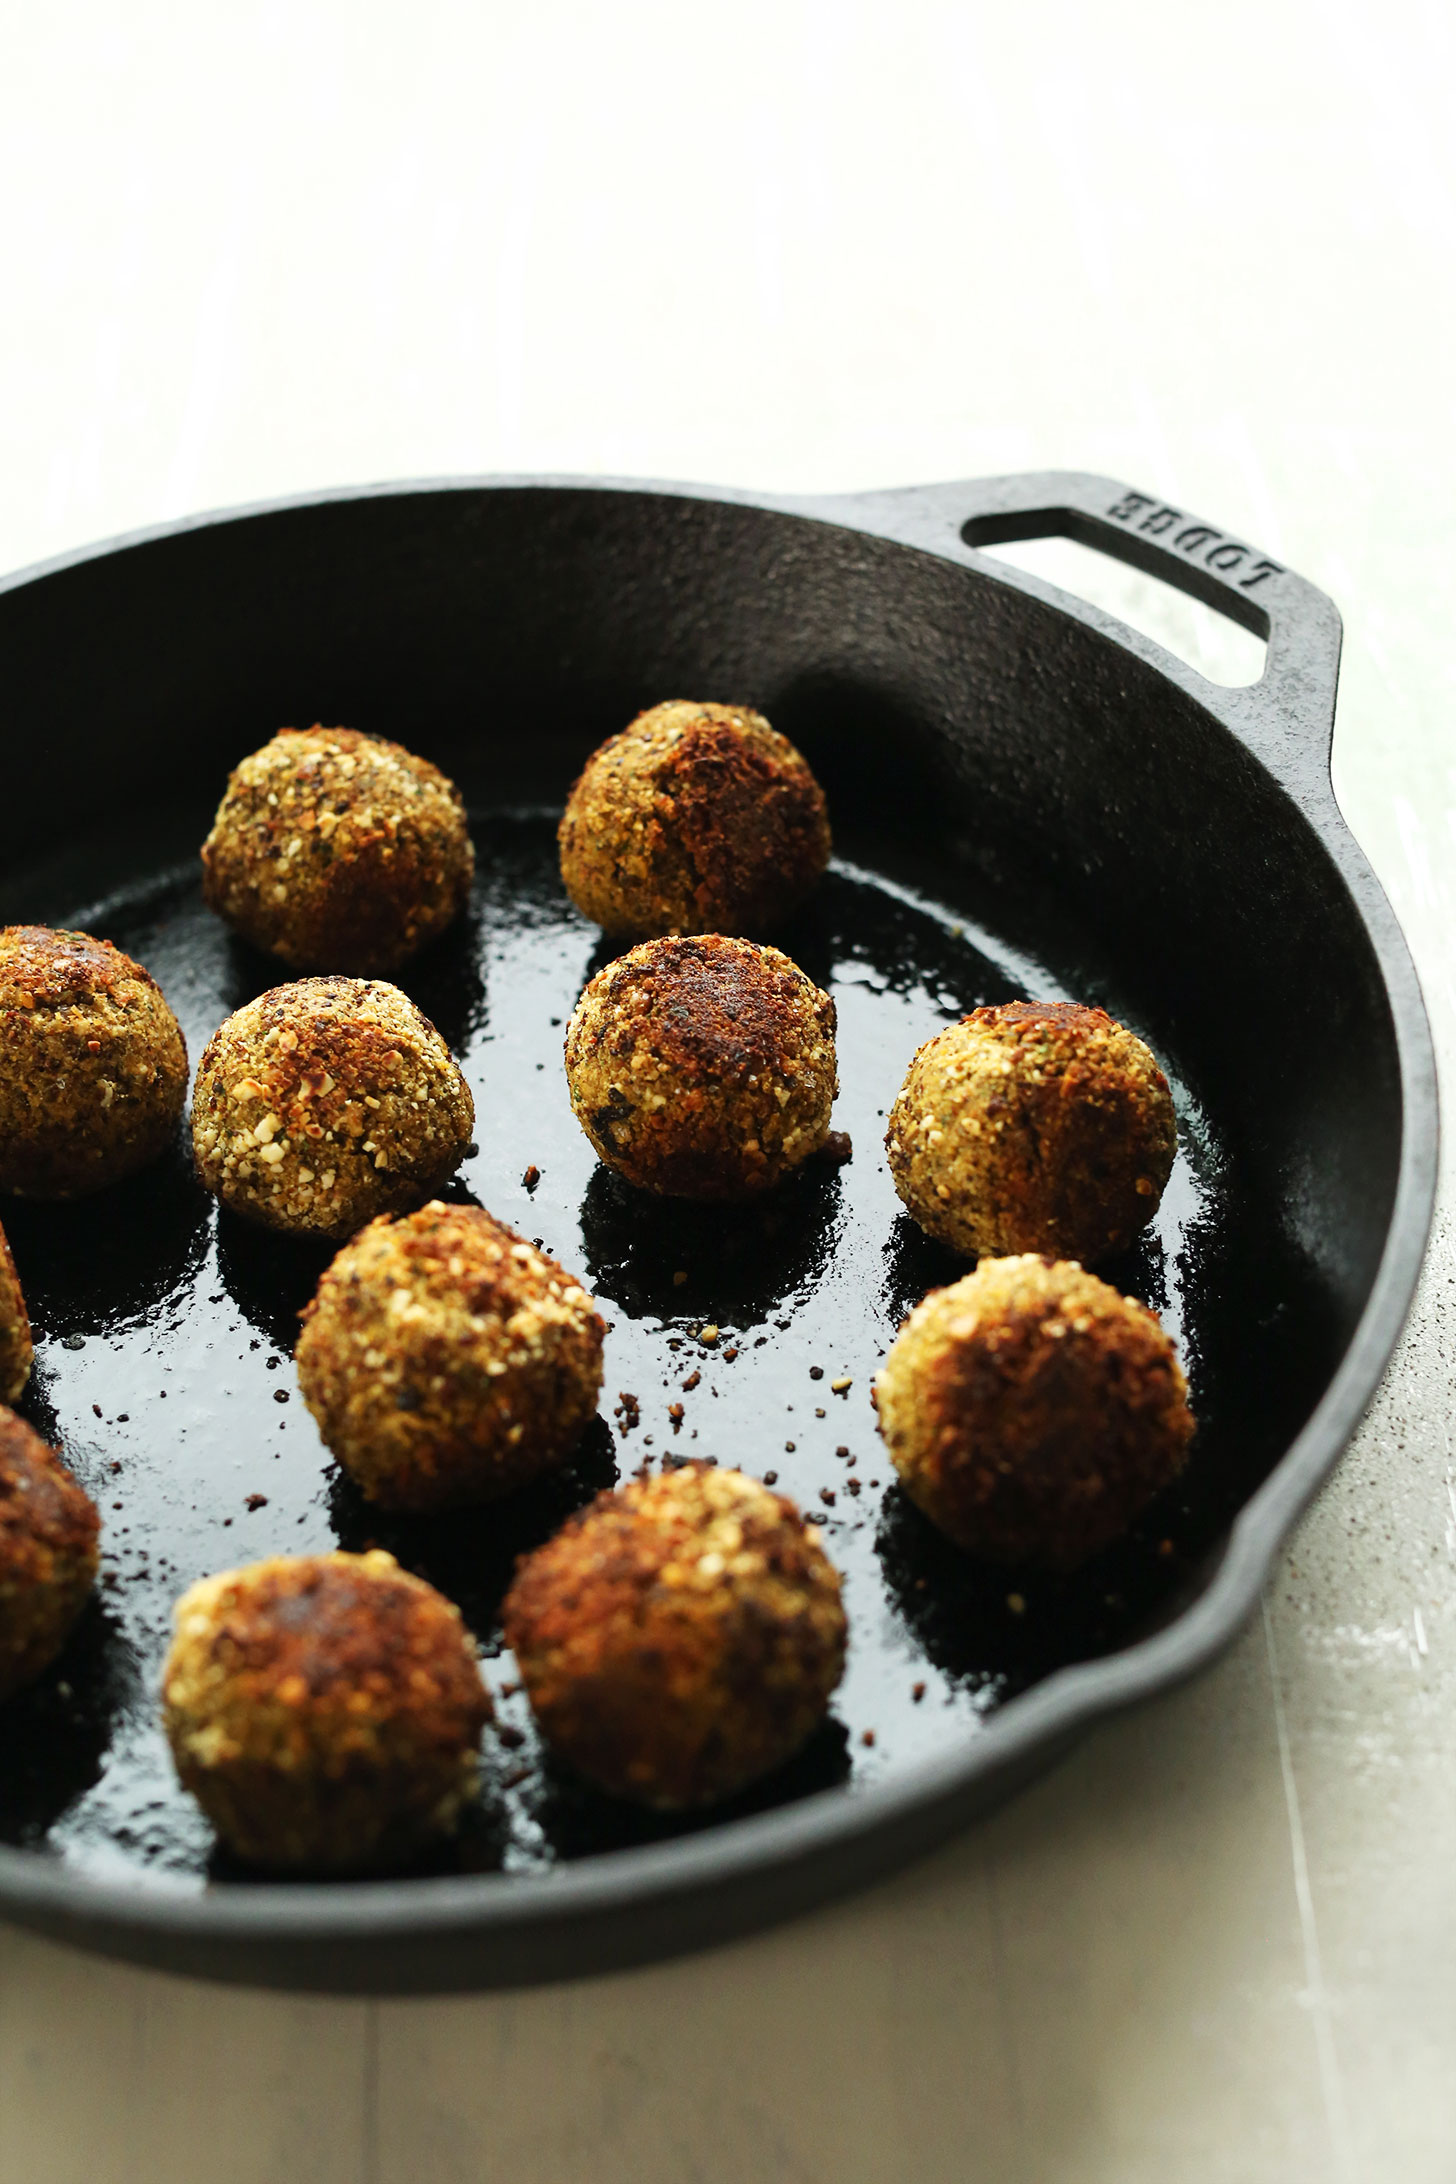 Browning vegan lentil meatballs in a cast-iron skillet for a delicious plant-based meal